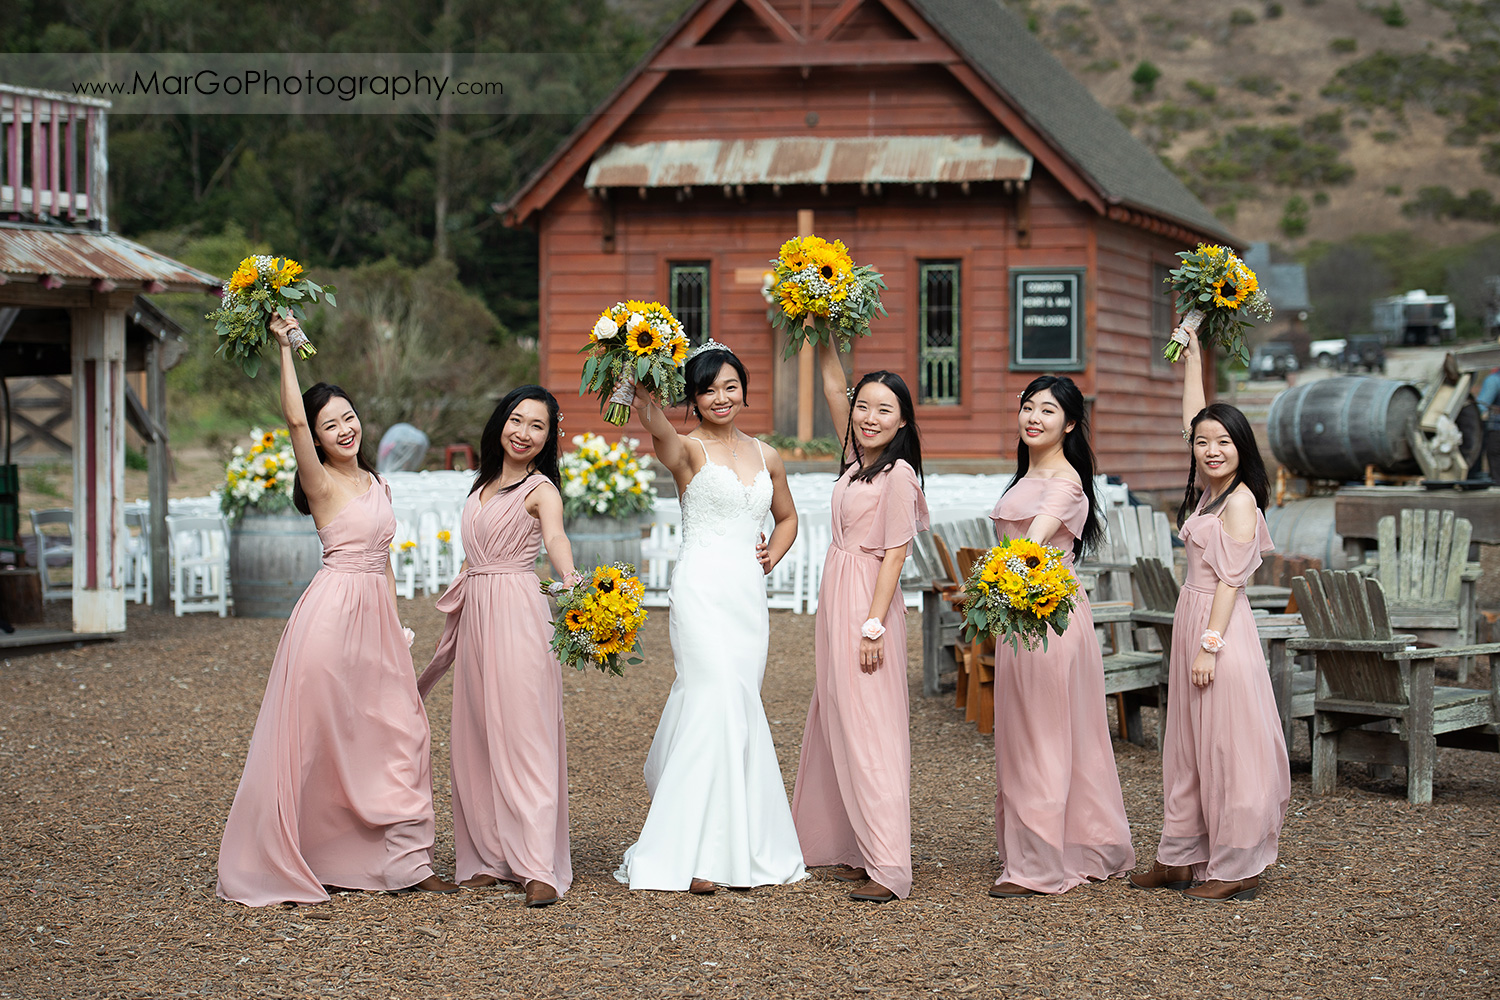 bride in white dress and bridesmaids in pink dresses showing yellow flower bouquets at Long Branch Saloon & Farms in Half Moon Bay - focus on girls